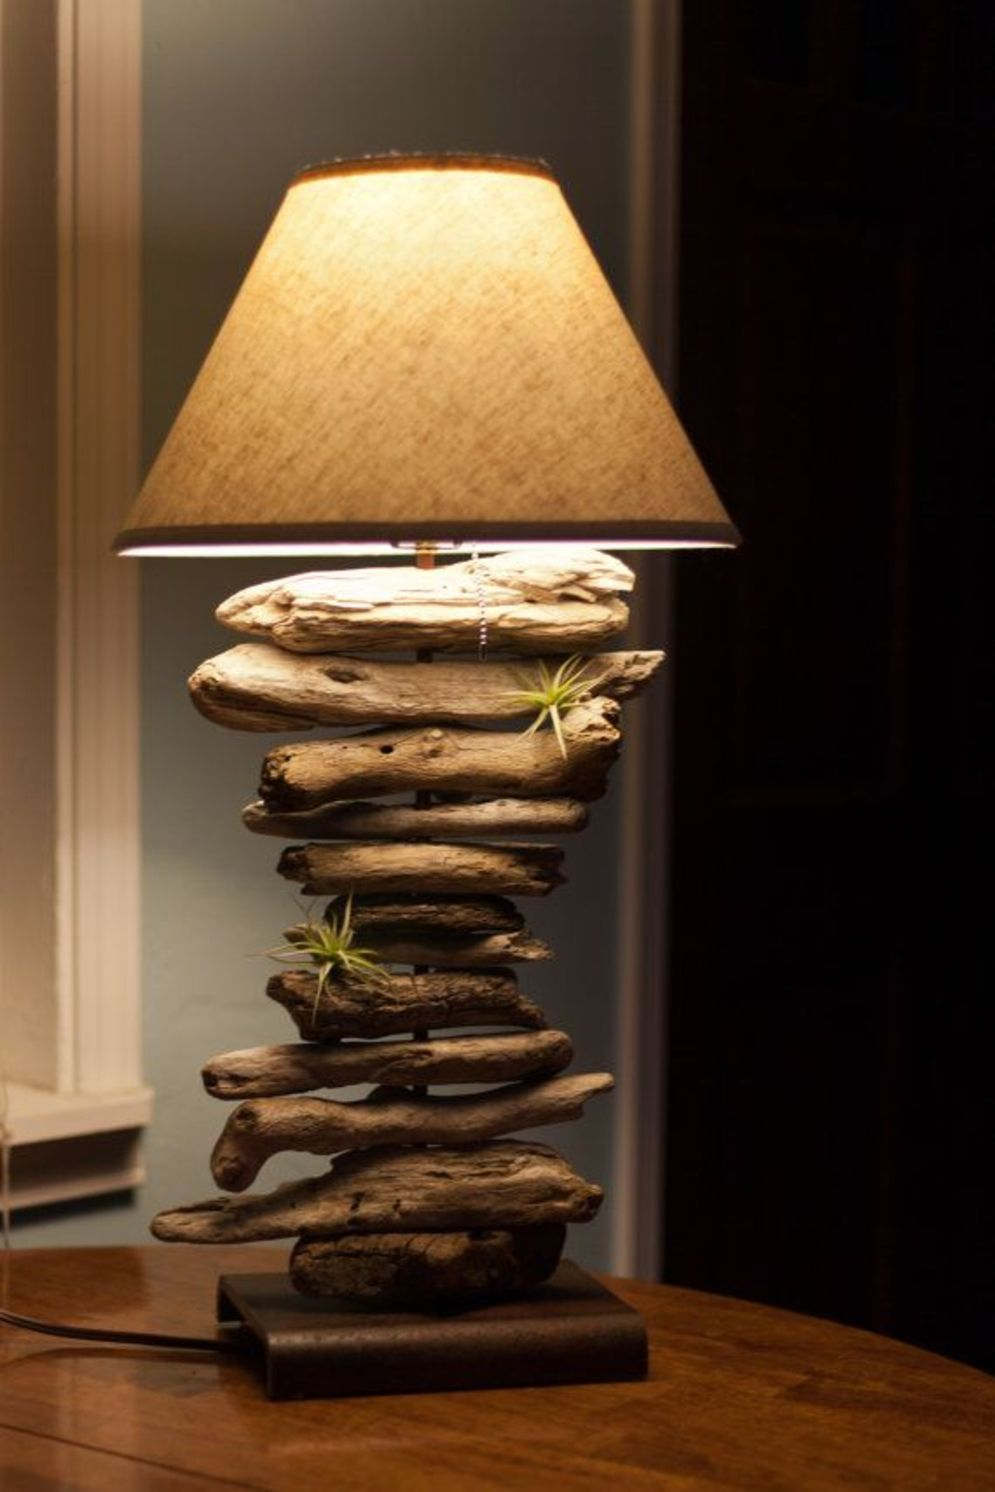 Awesome driftwood lamp stands giving authentic decoration in natural art style Image 7